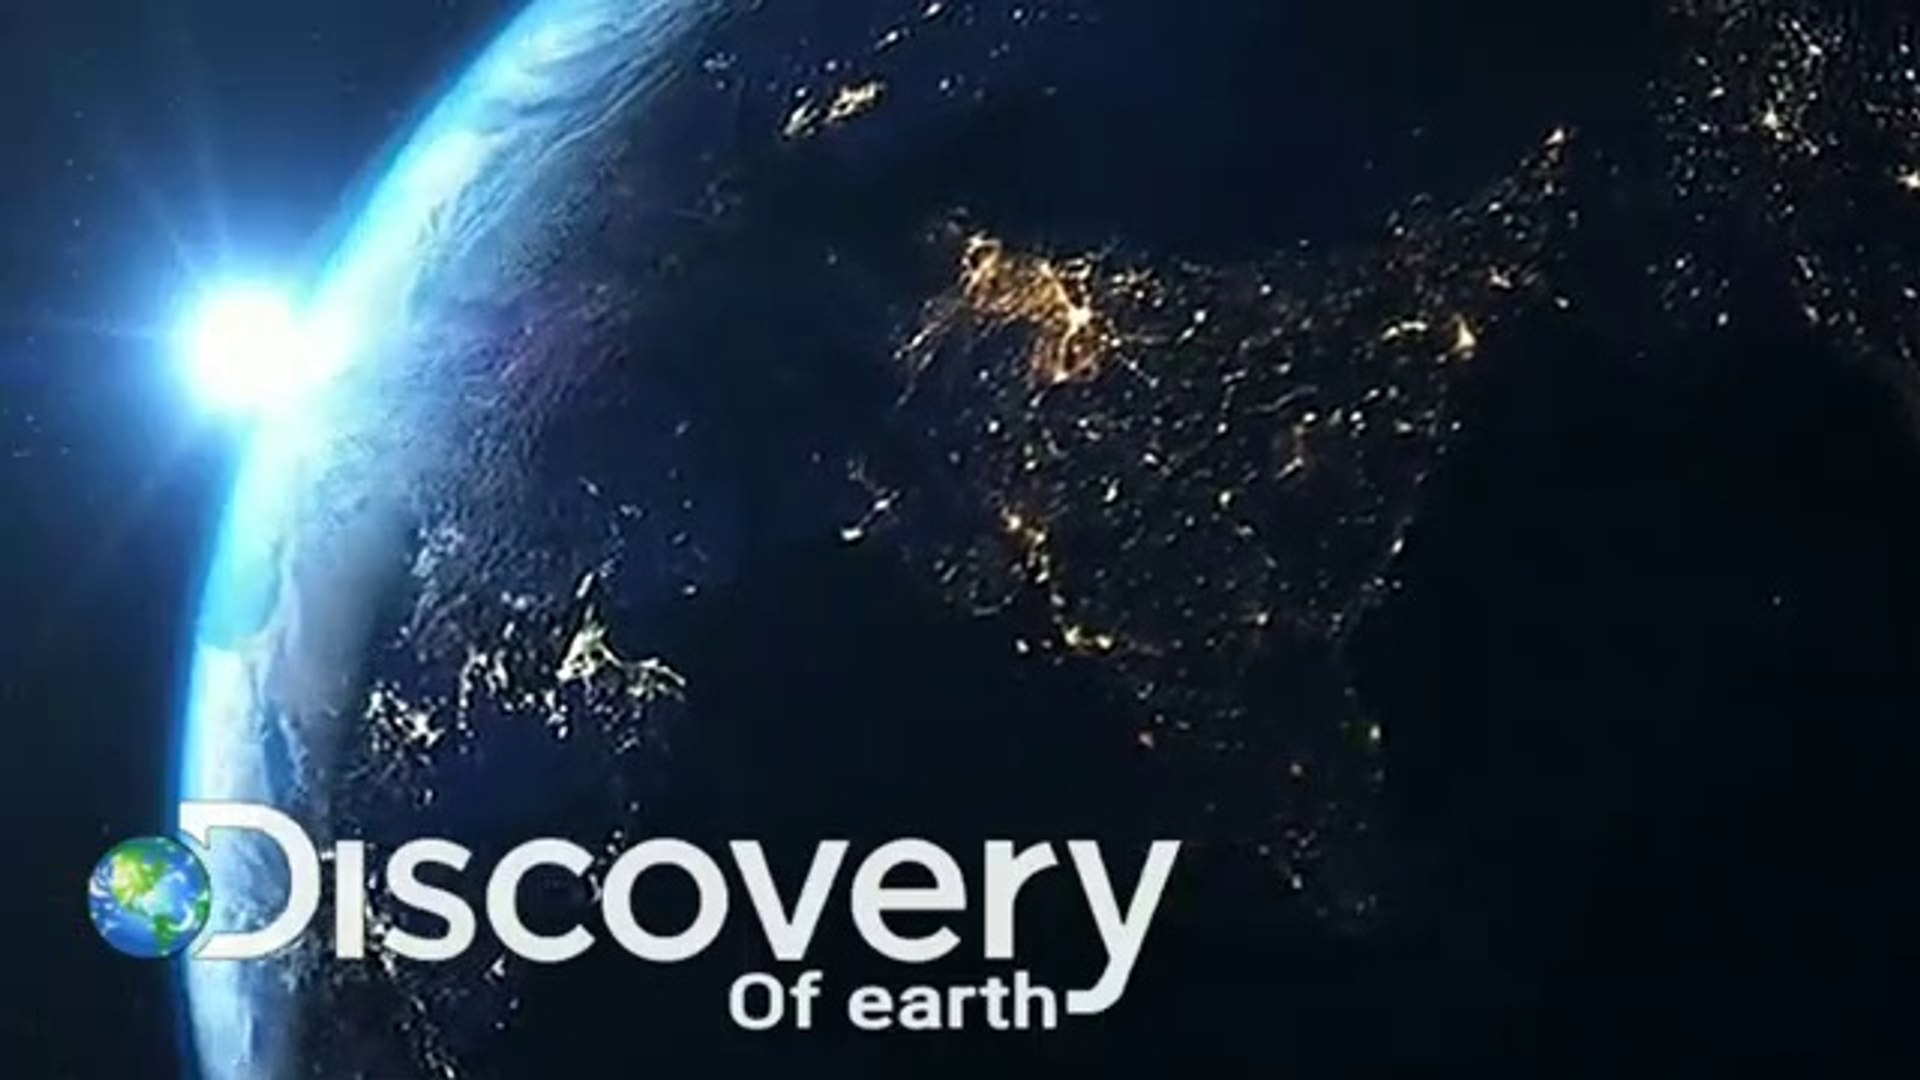 Discovery of earth discoverys official trailer